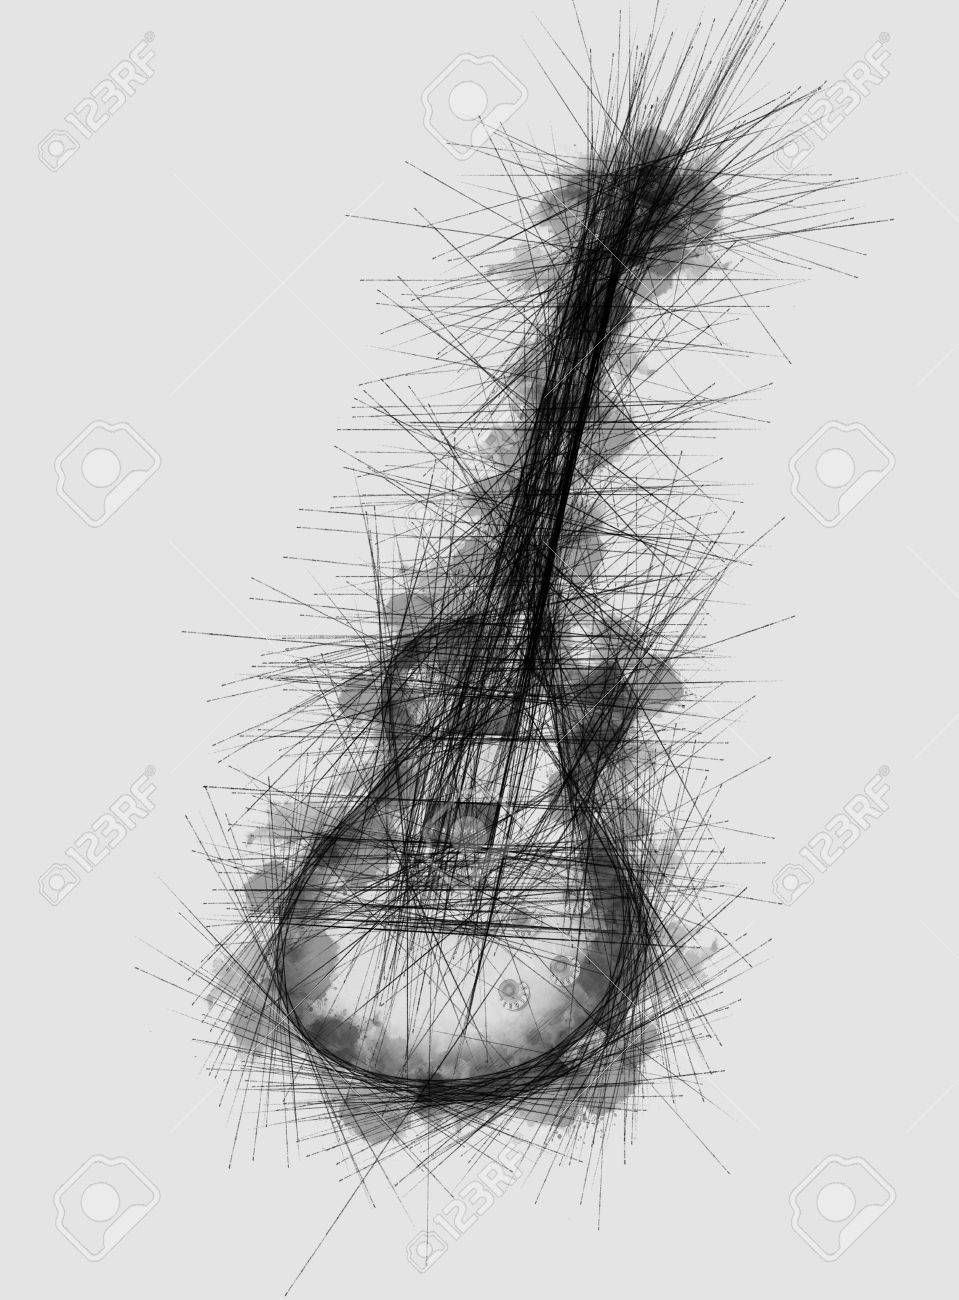 Grunge textured monochromatic pencil drawing or sketch of a guitar with blotched ink effect on light